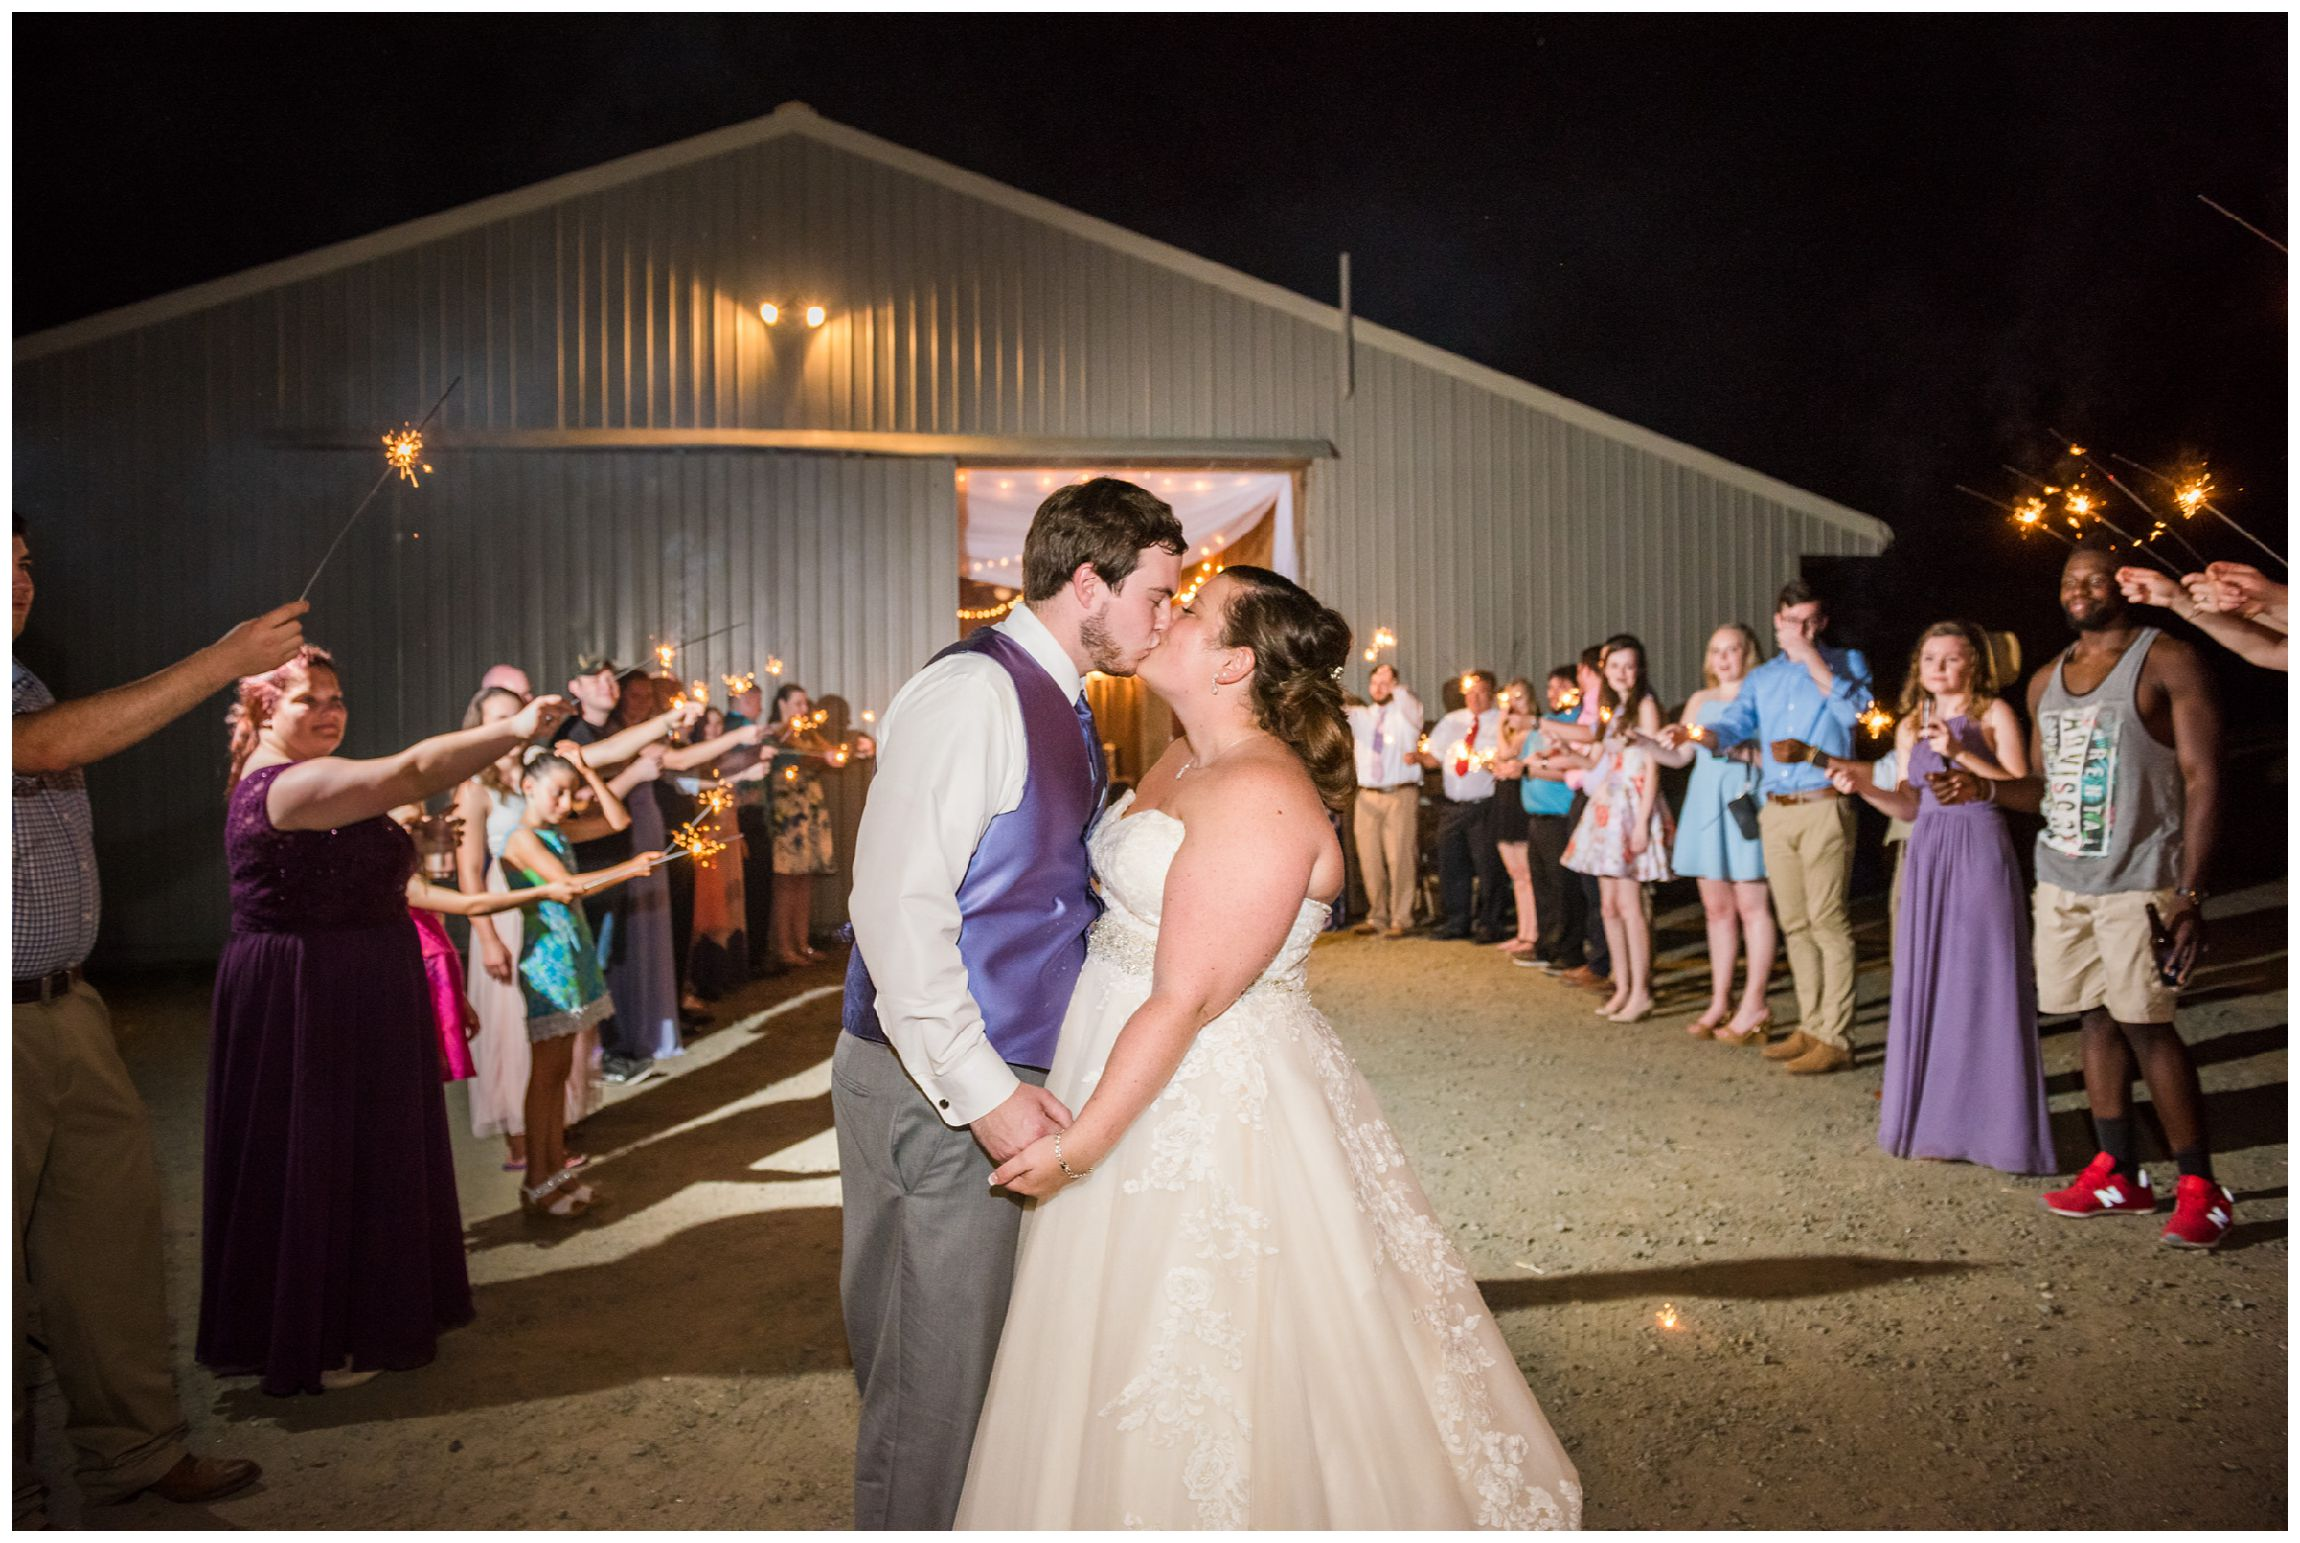 sparkler wedding reception send off at Wolftrap Farm in Gordonsville, Virginia